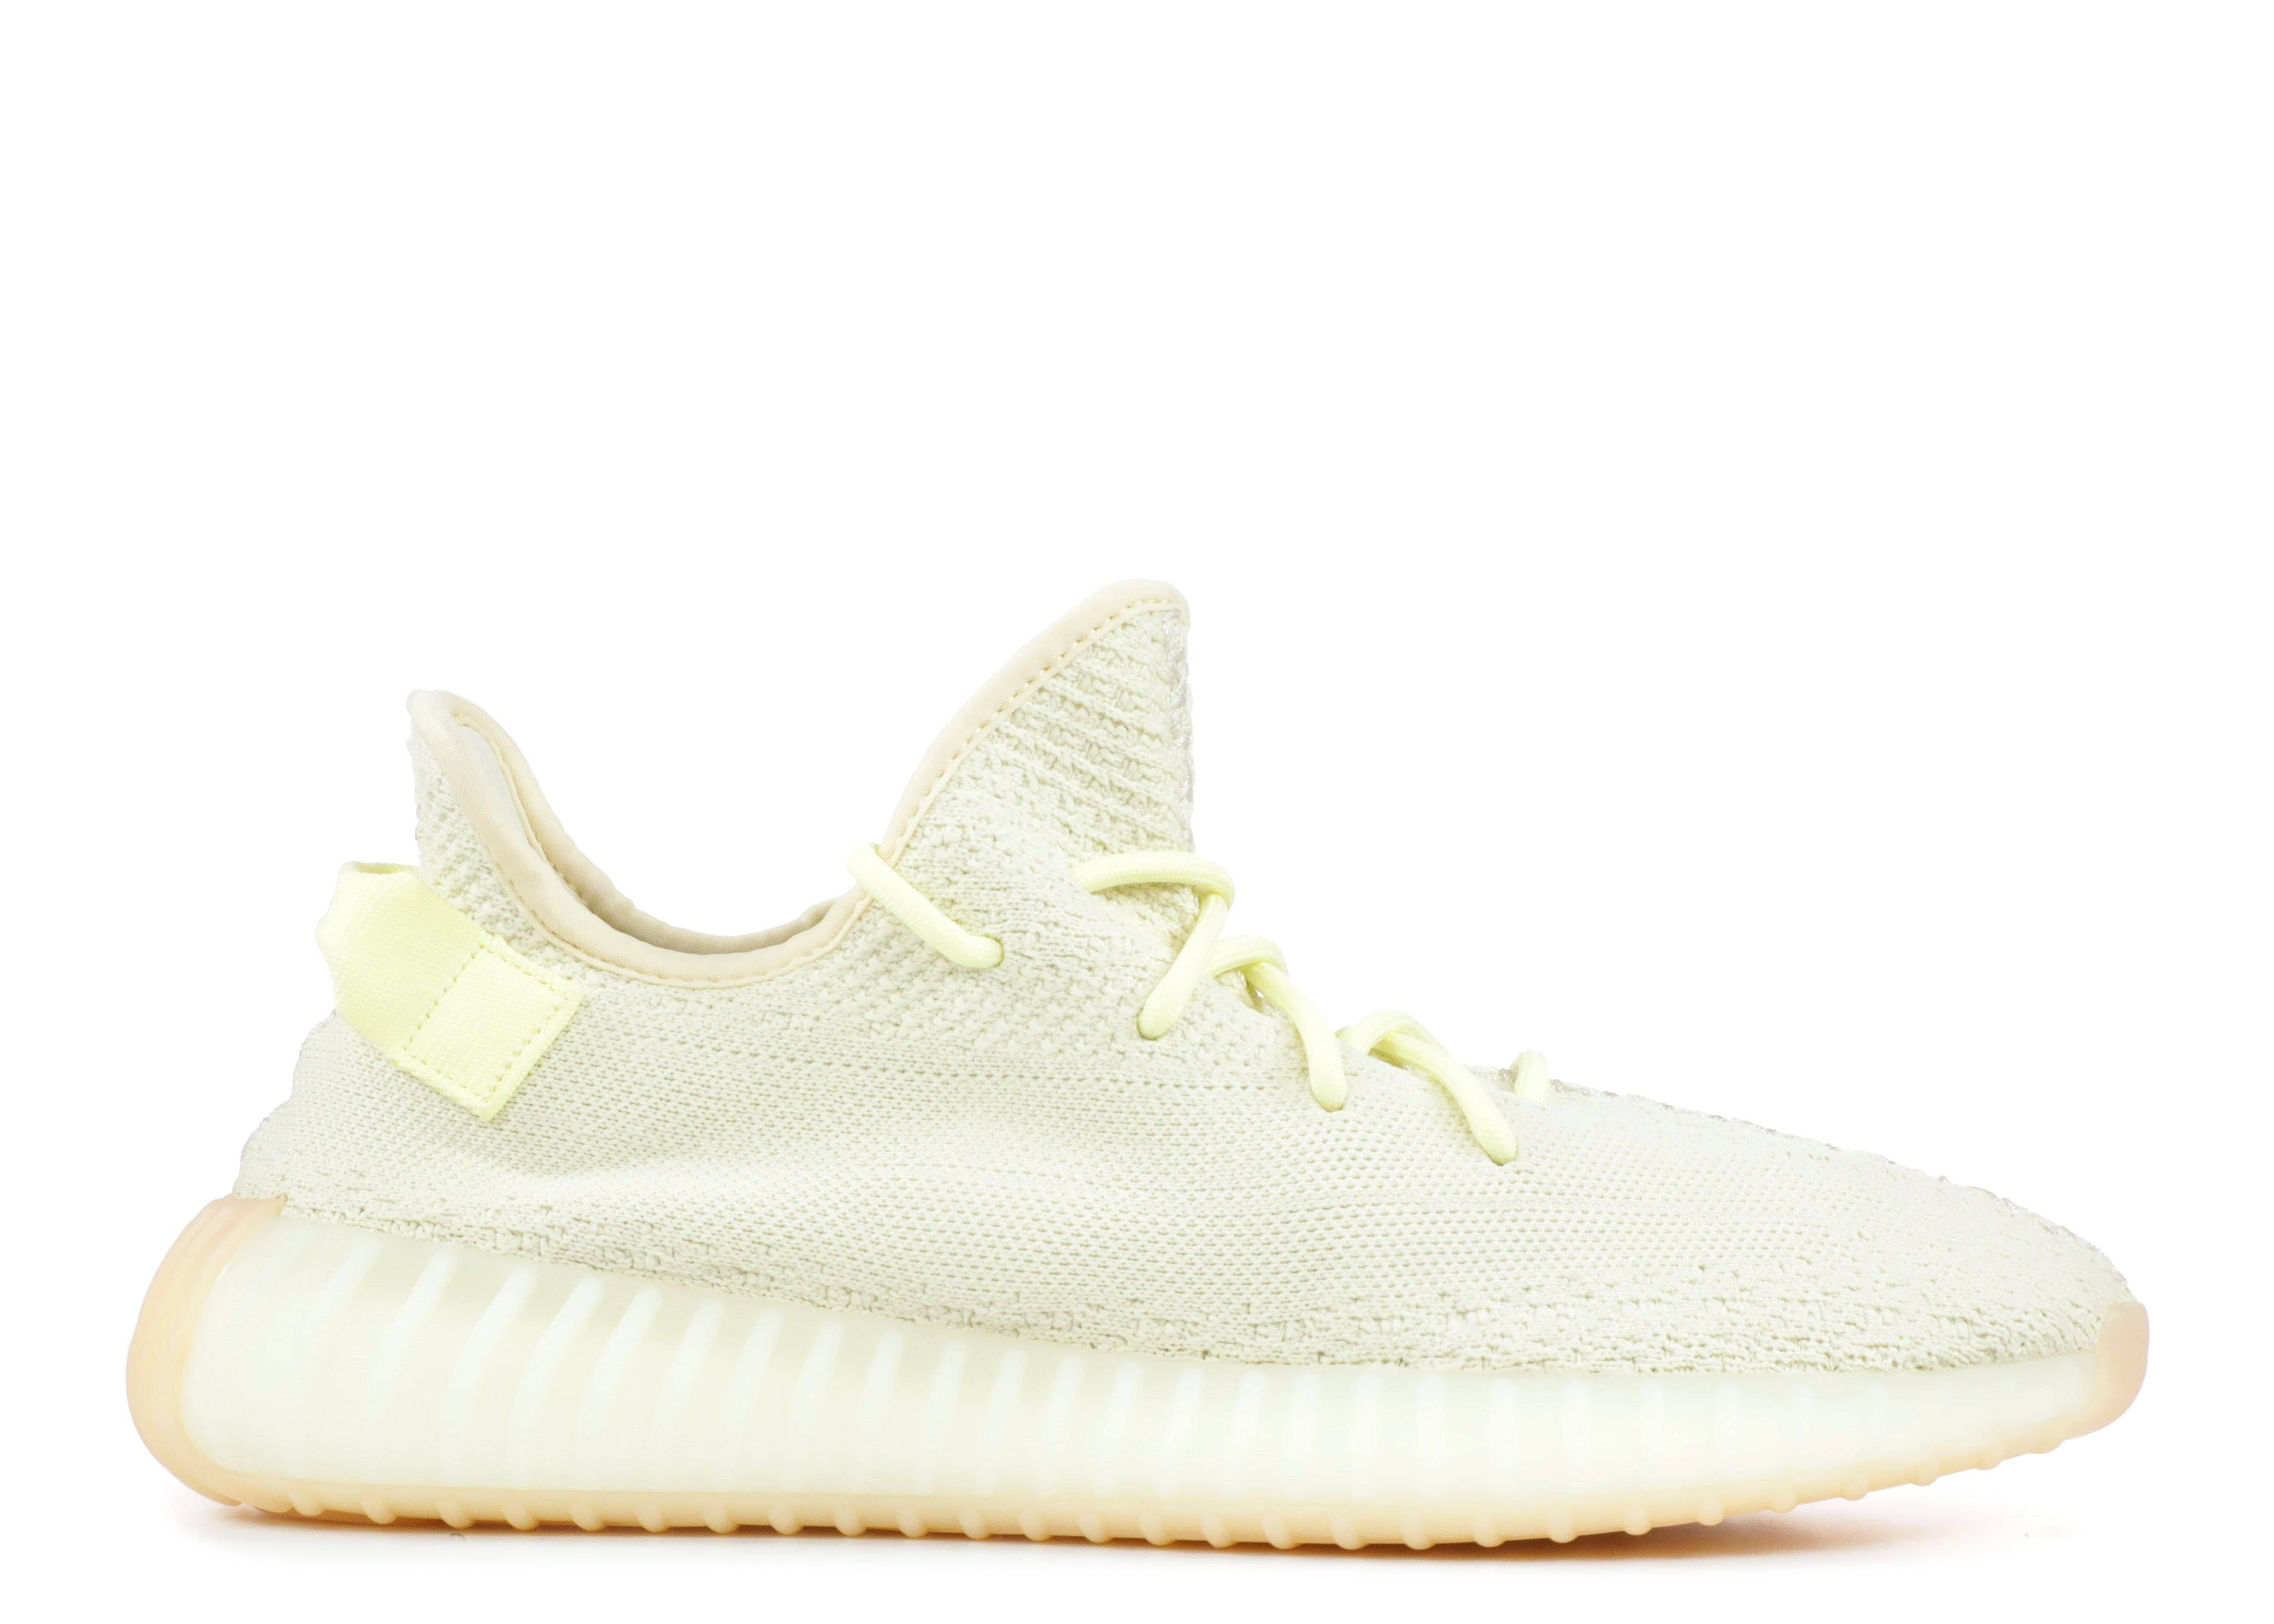 64afb40120d Yeezy Boost 350 V2